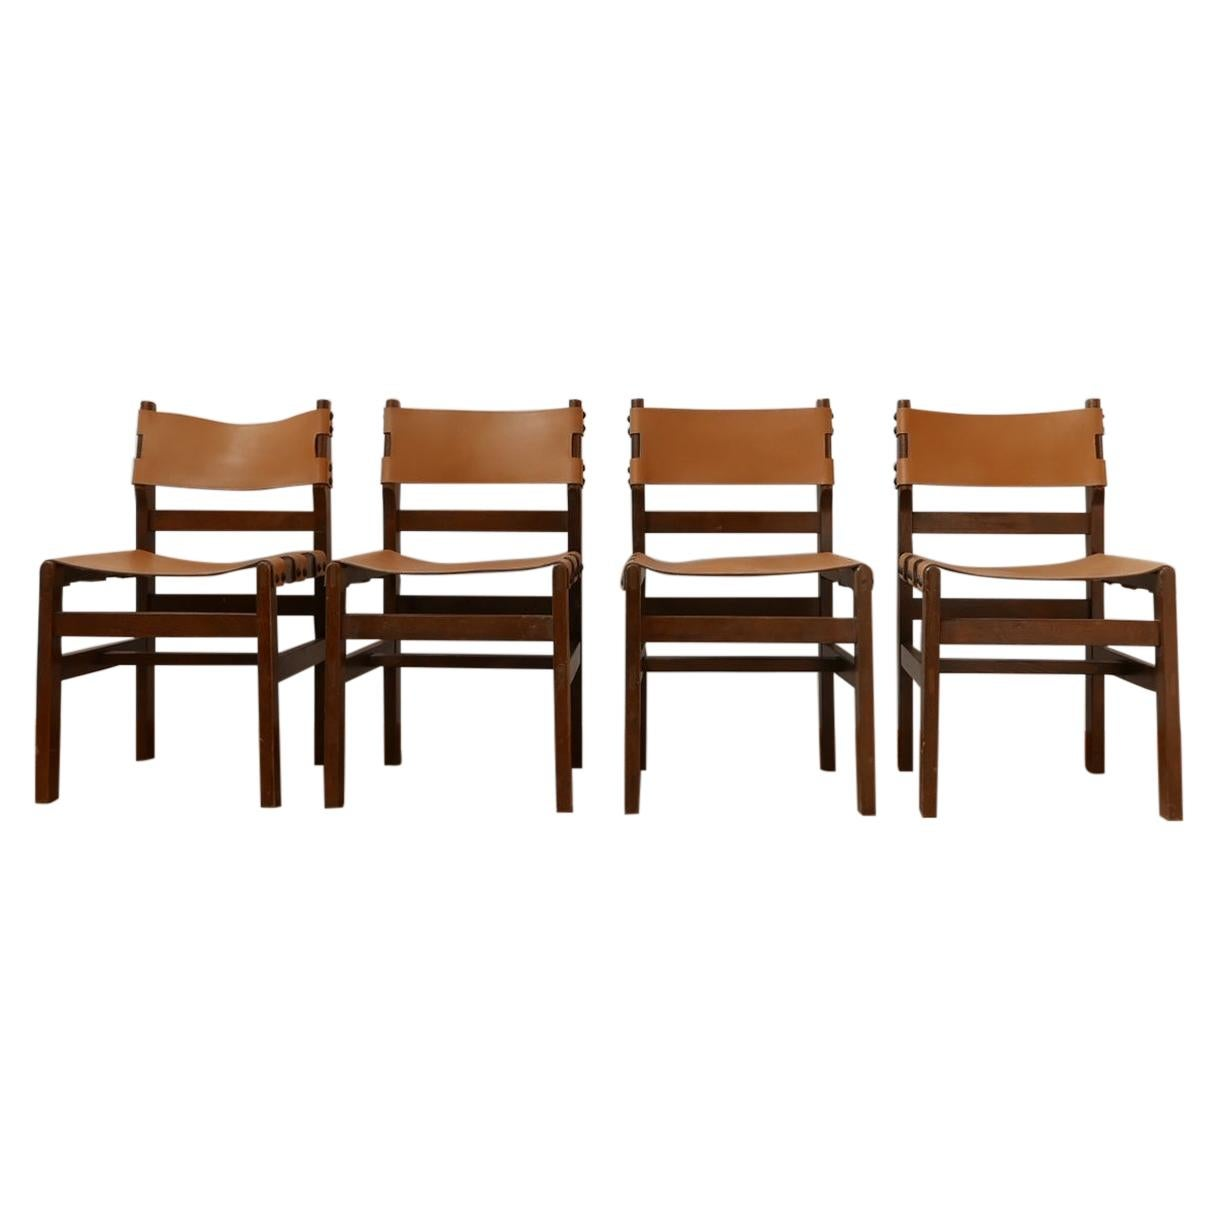 Maison Regain French Mid-Century Leather Dining Chairs '4'